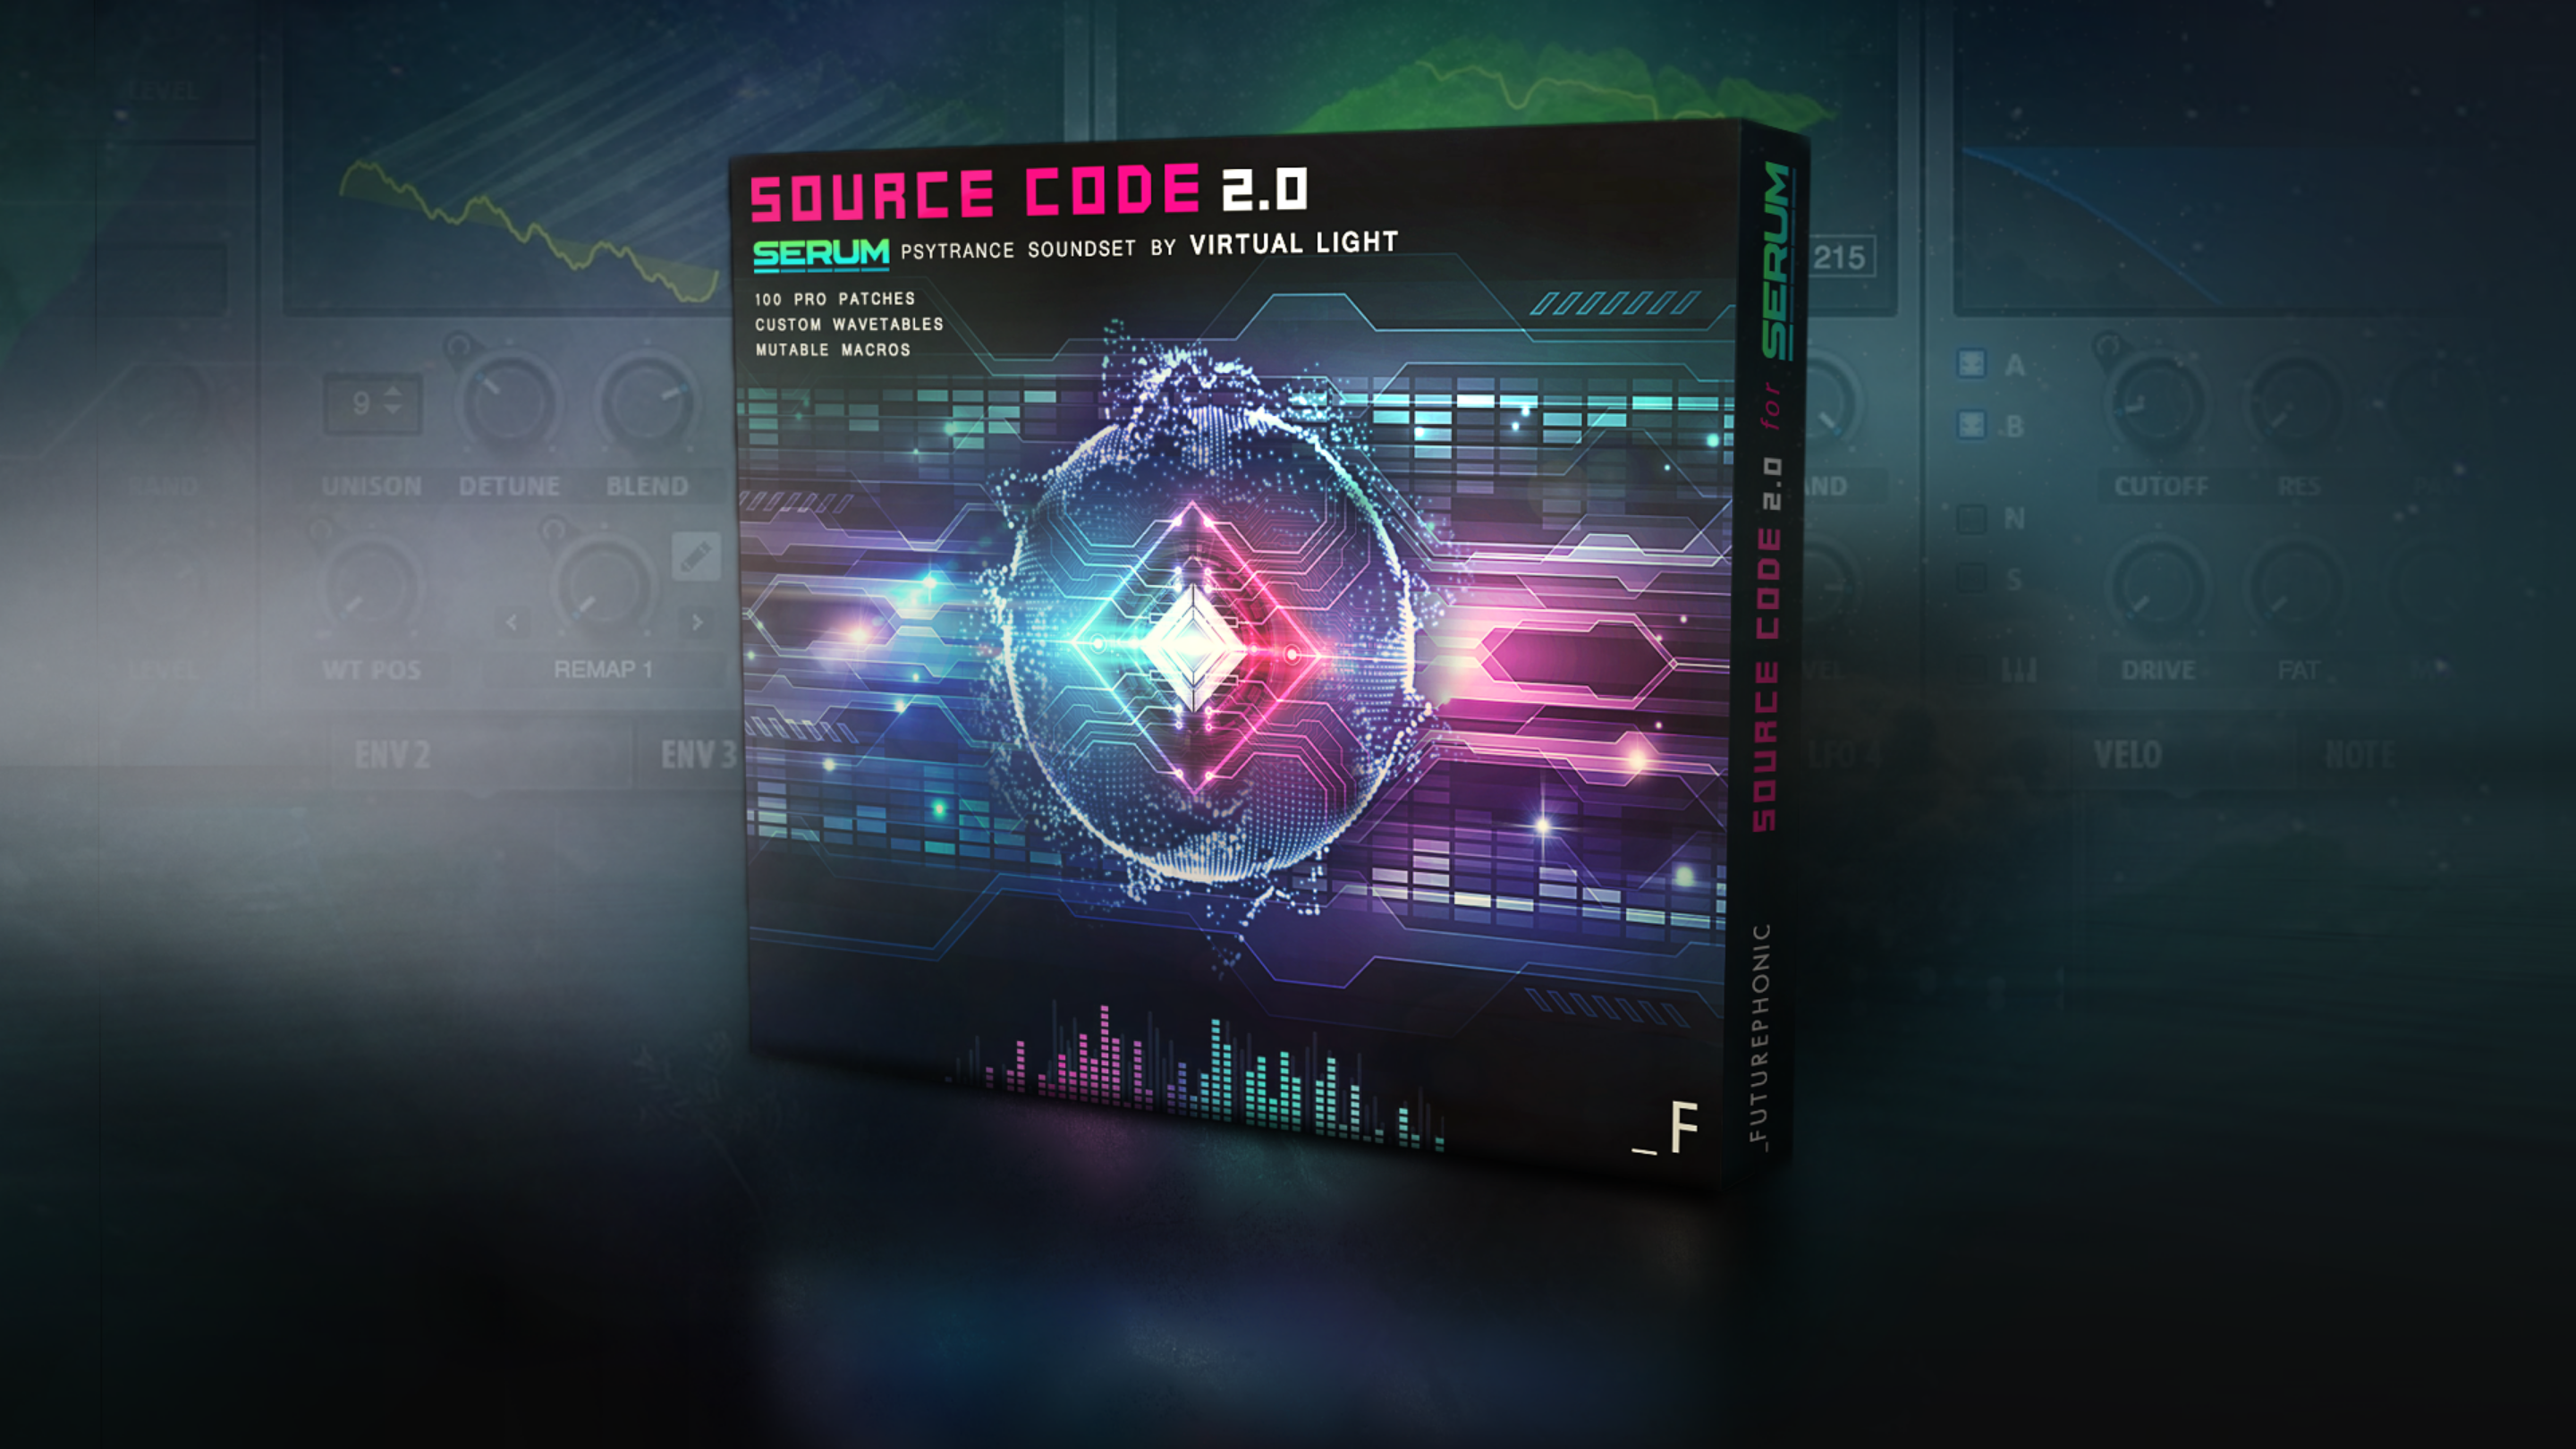 [Source Code 2.0] by Virtual Light